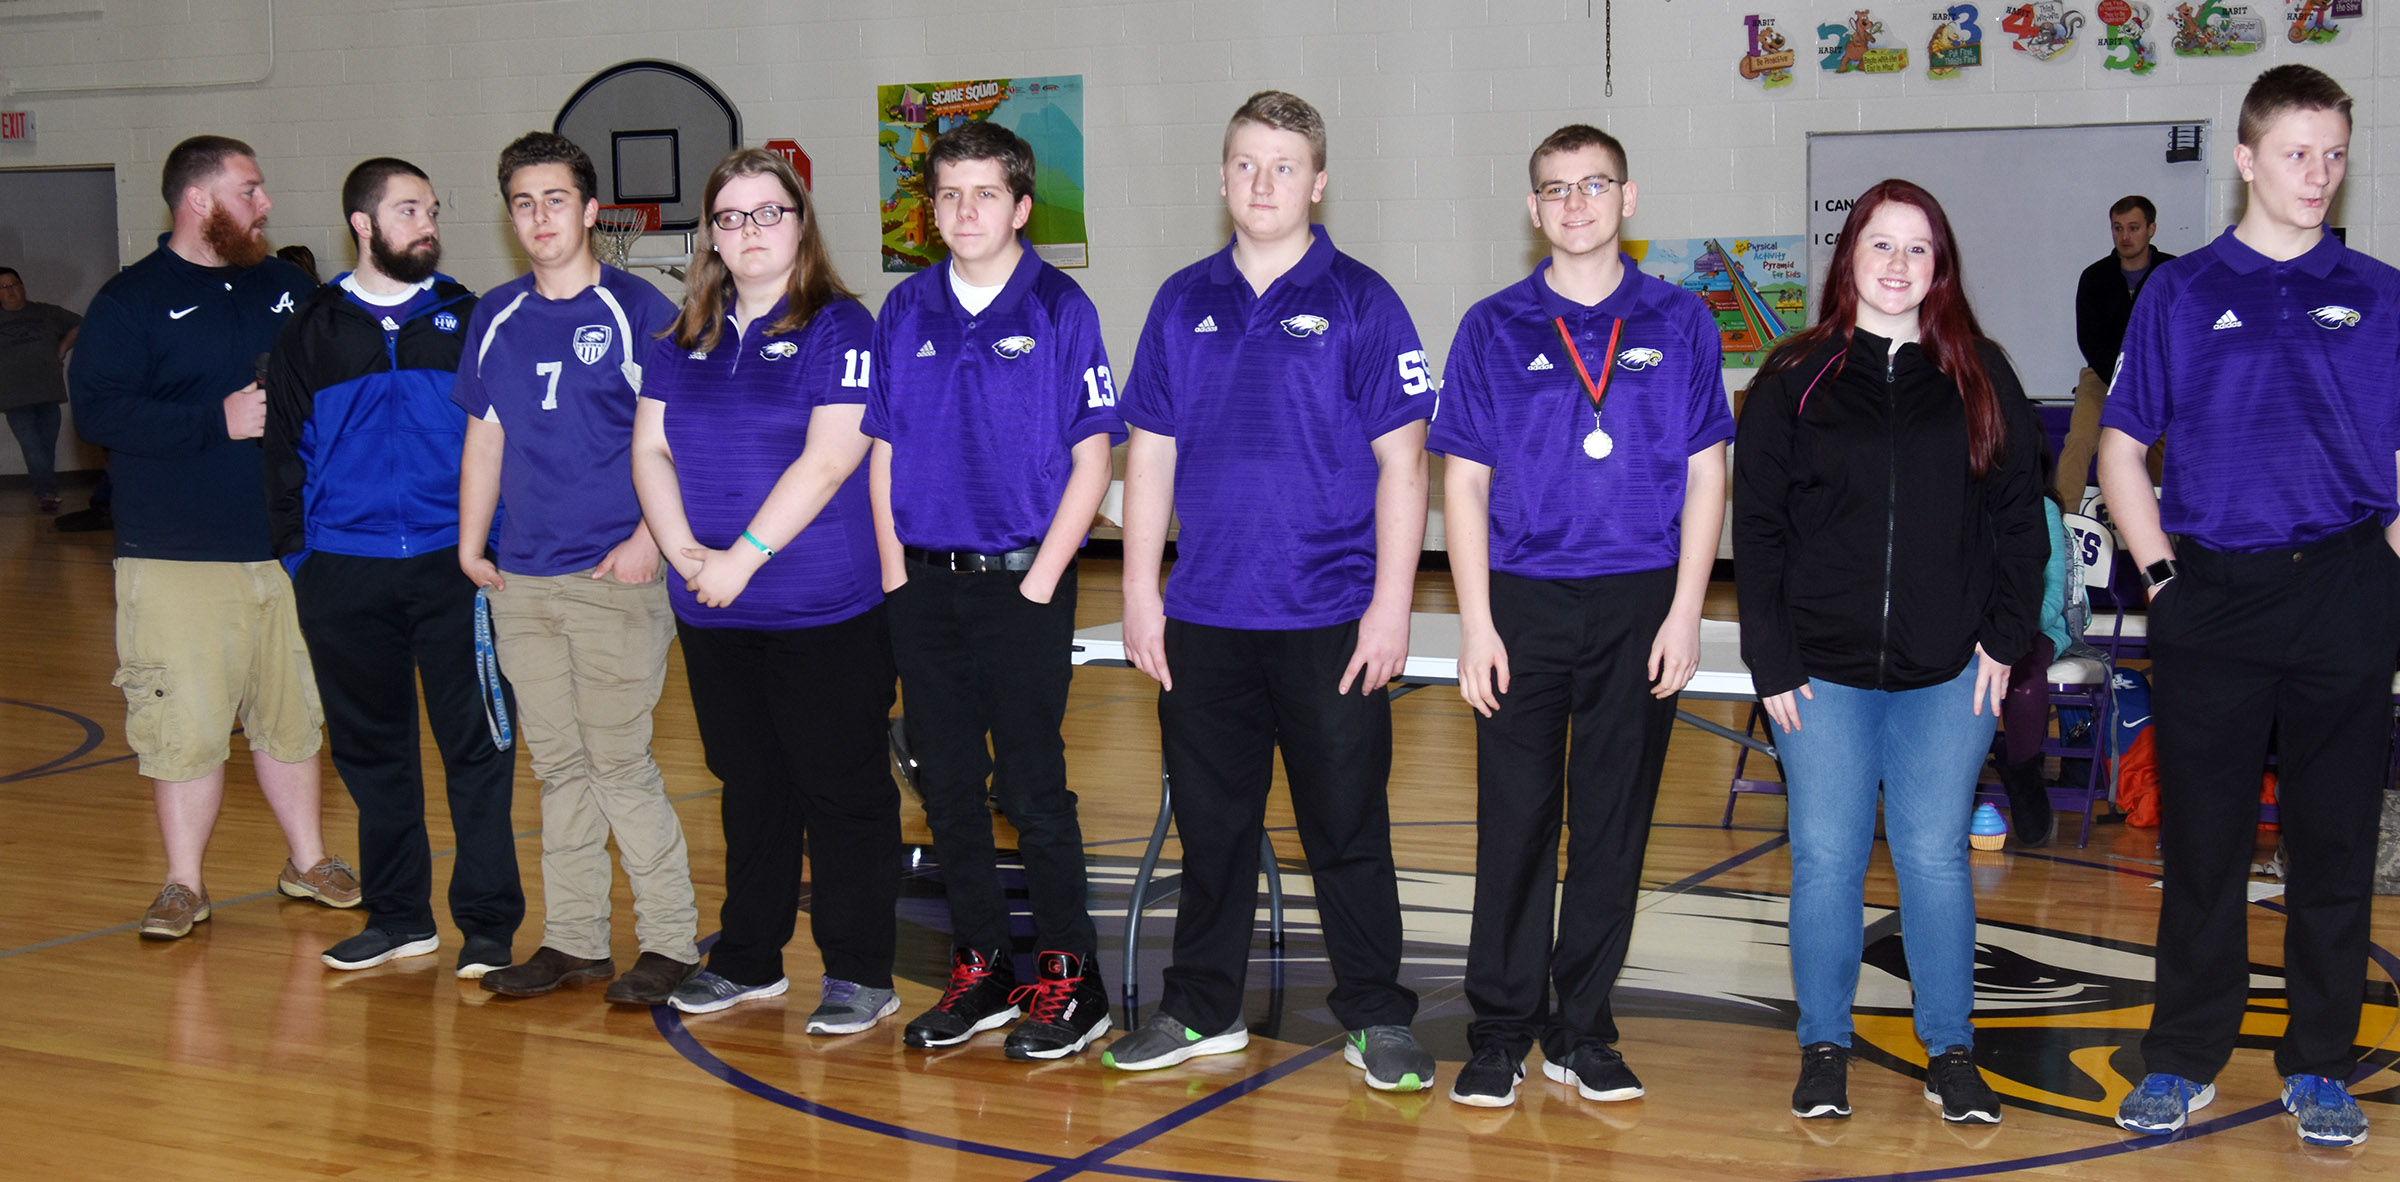 CHS bowling team members are honored at the CES assembly on Friday, Feb. 16.